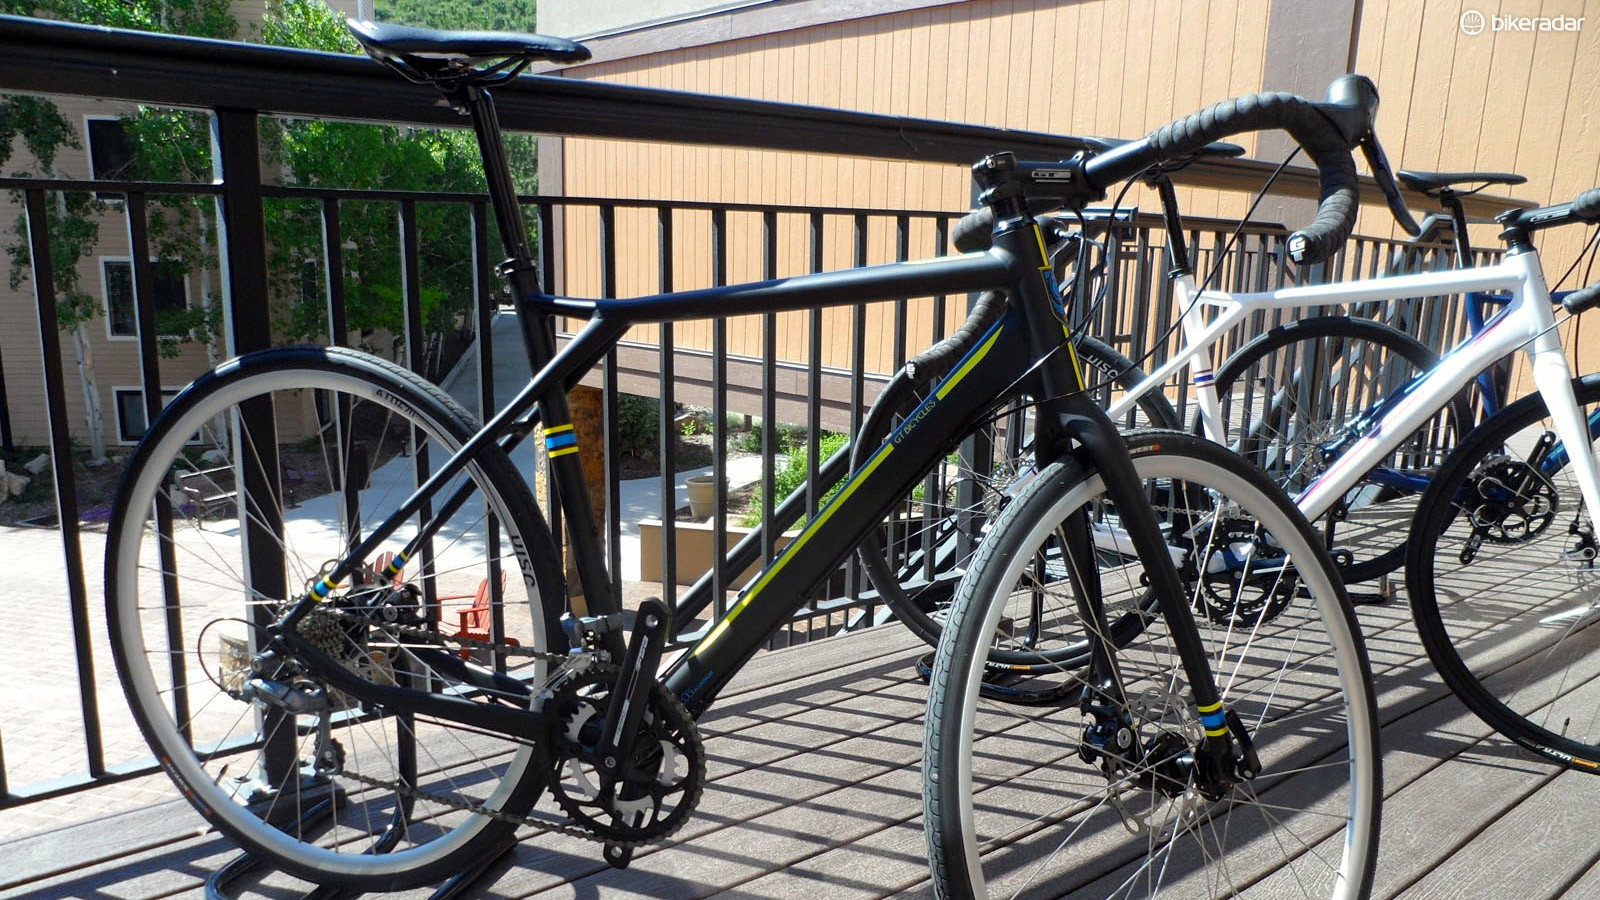 Next in line is the Tiagra model at £899 / US$1,099